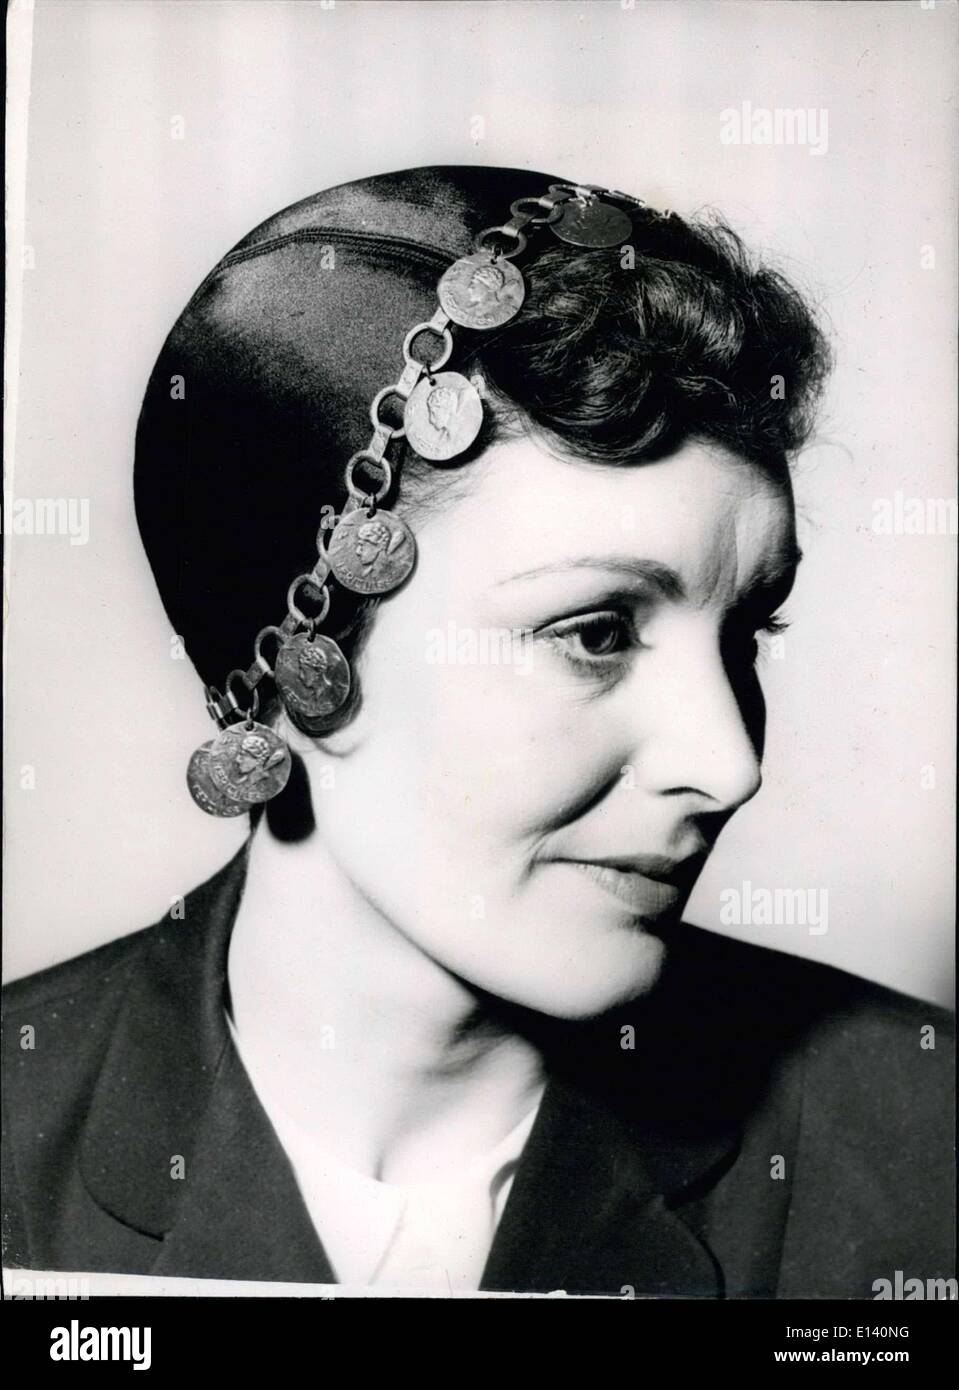 Mar. 31, 2012 - The latest in hat fashion : Juliet cap trimmed with gold coins : photo shows The black satin Juliet cap, trammed with gold coin round the edge - seen in the Simone Mirman collection of new millinery. - Stock Image